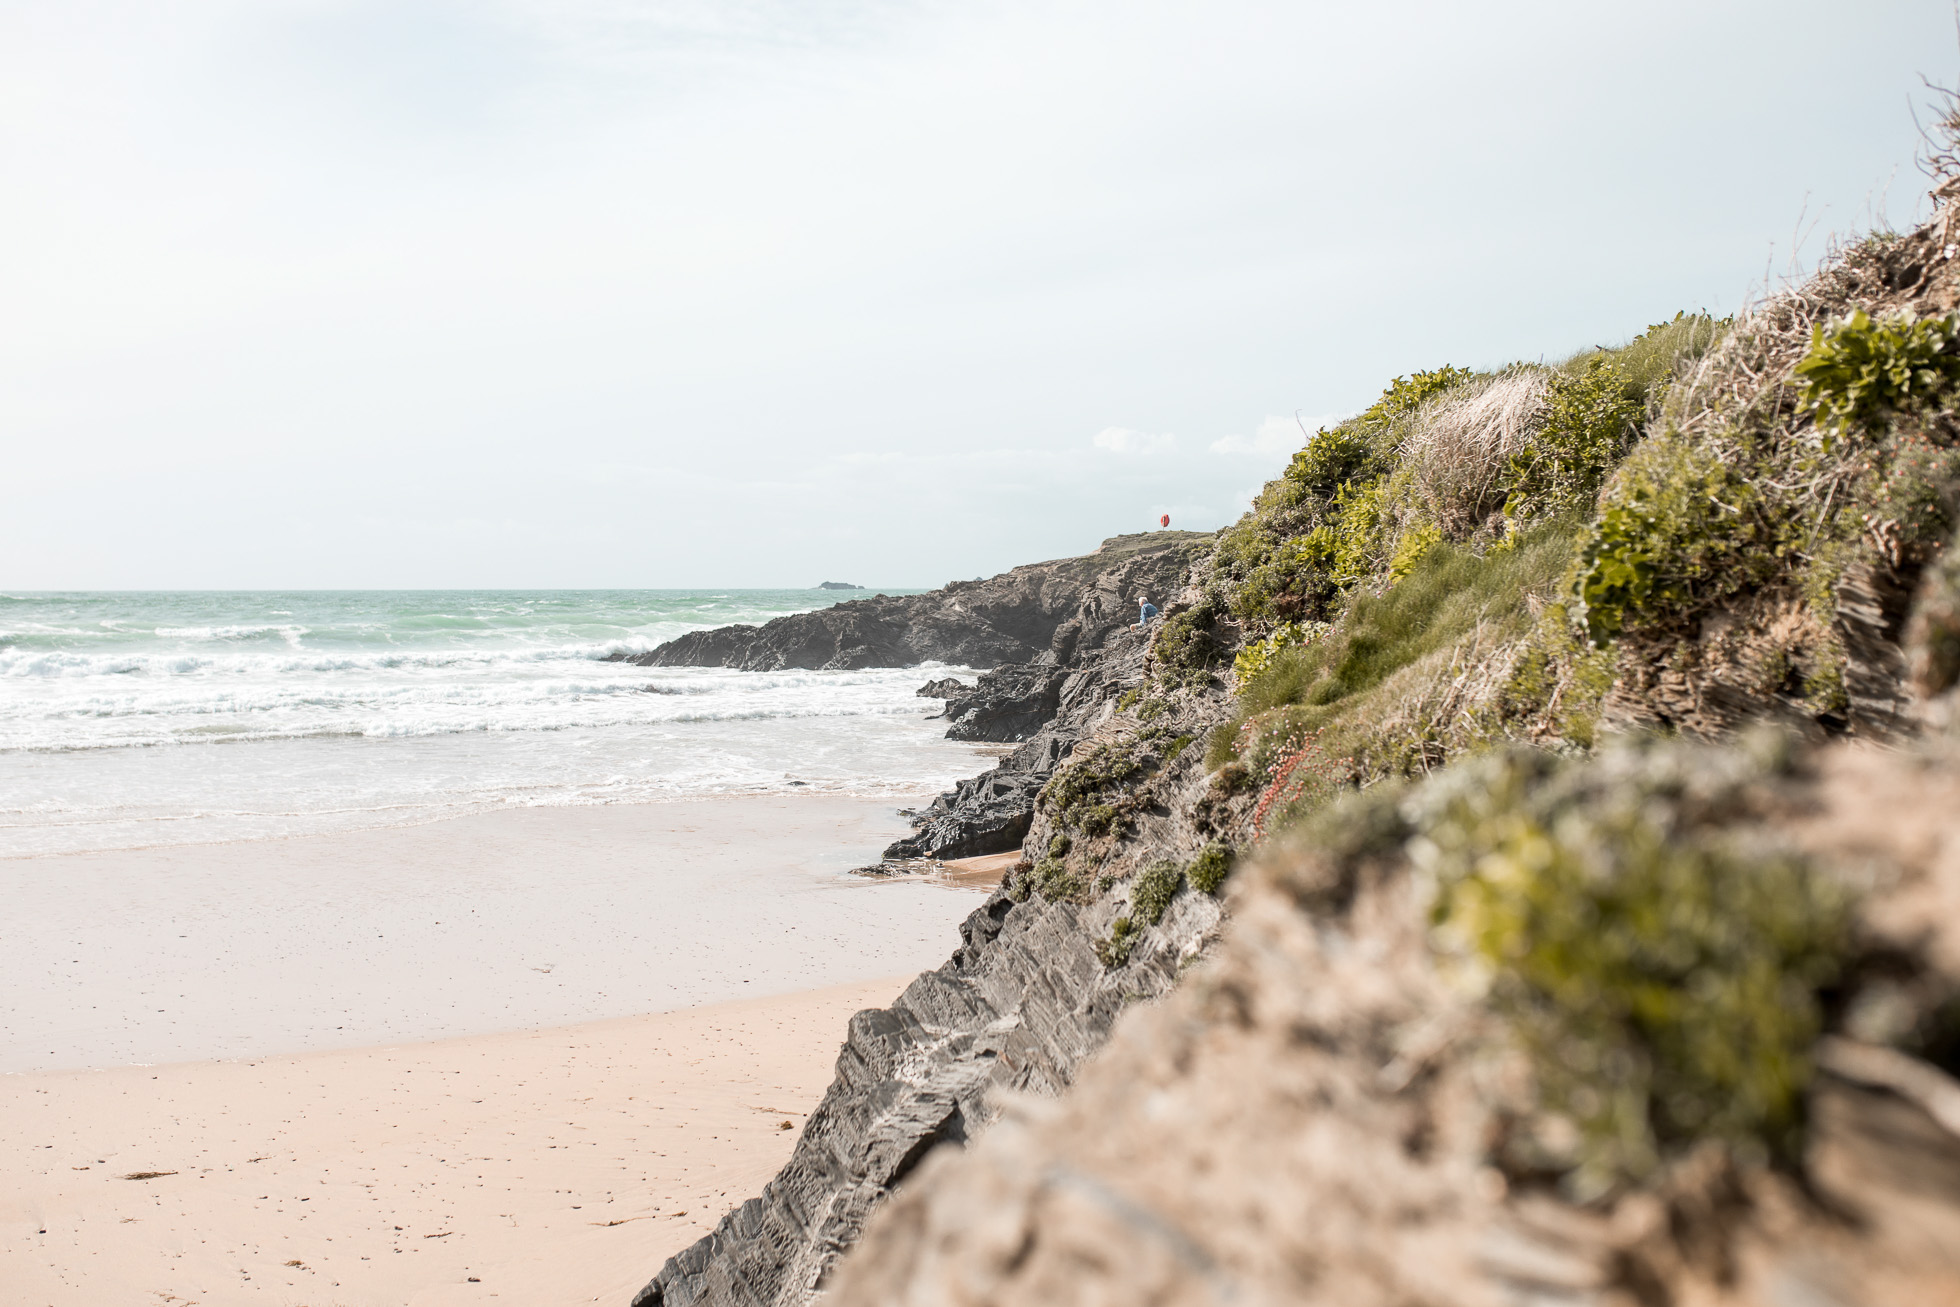 A four day Cornish adventure: WMGT Cornwall, Treyarnon Bay, Padstow and Newquay!